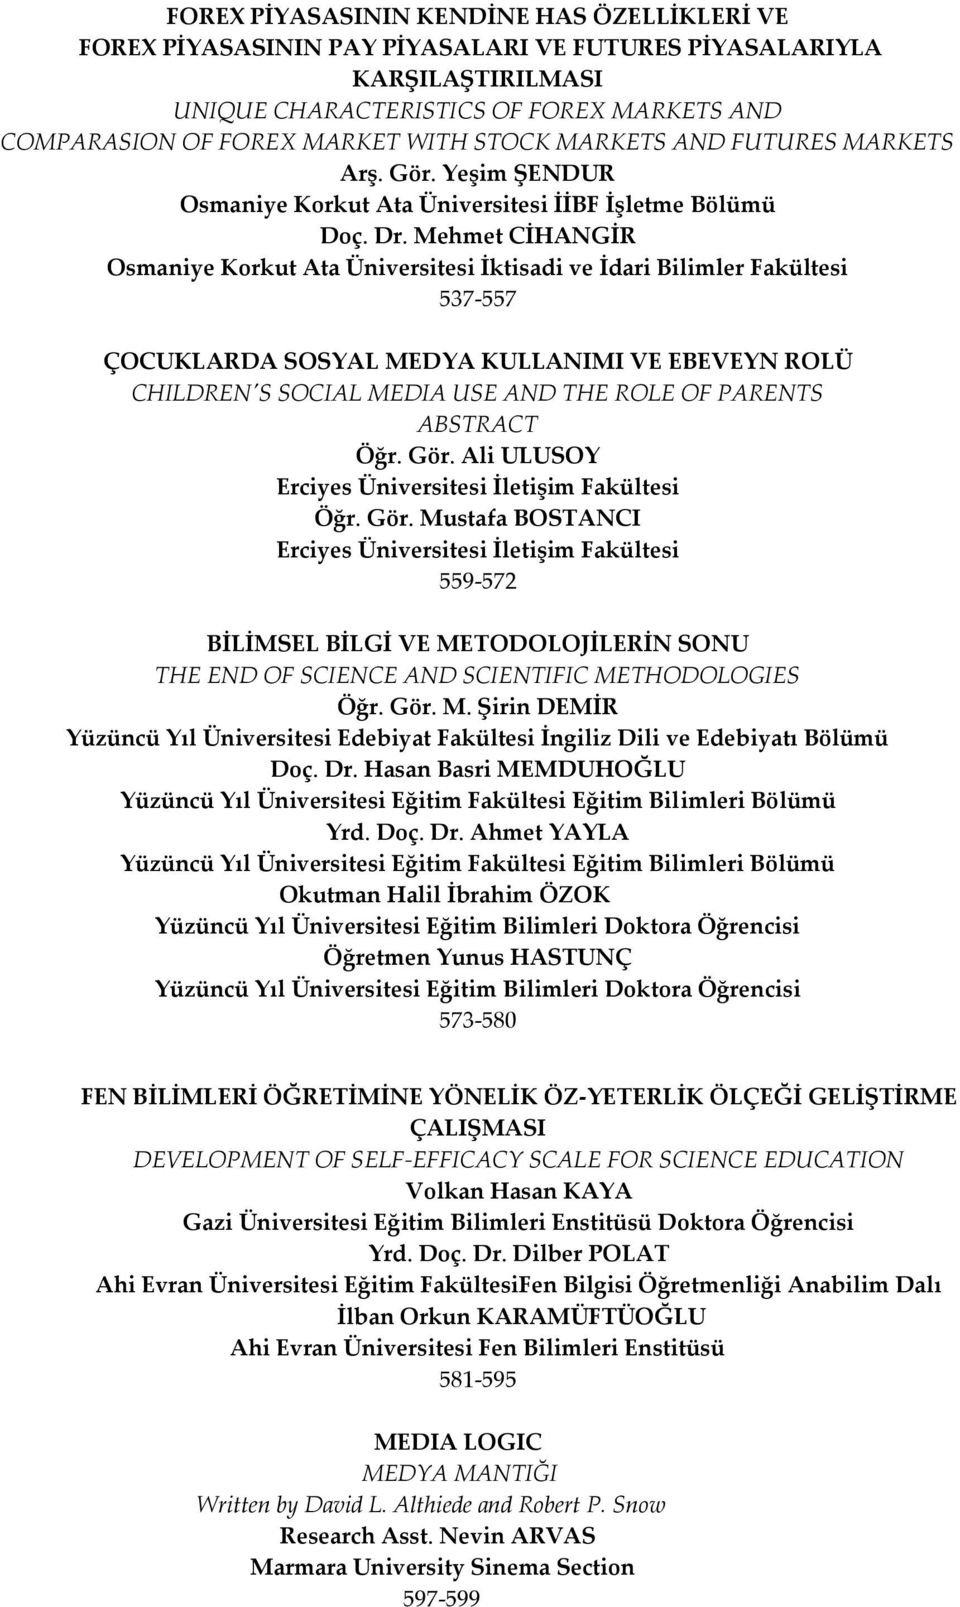 Mehmet CİHANGİR Osmaniye Korkut Ata Üniversitesi İktisadi ve İdari Bilimler Fakültesi 537-557 ÇOCUKLARDA SOSYAL MEDYA KULLANIMI VE EBEVEYN ROLÜ CHILDREN'S SOCIAL MEDIA USE AND THE ROLE OF PARENTS